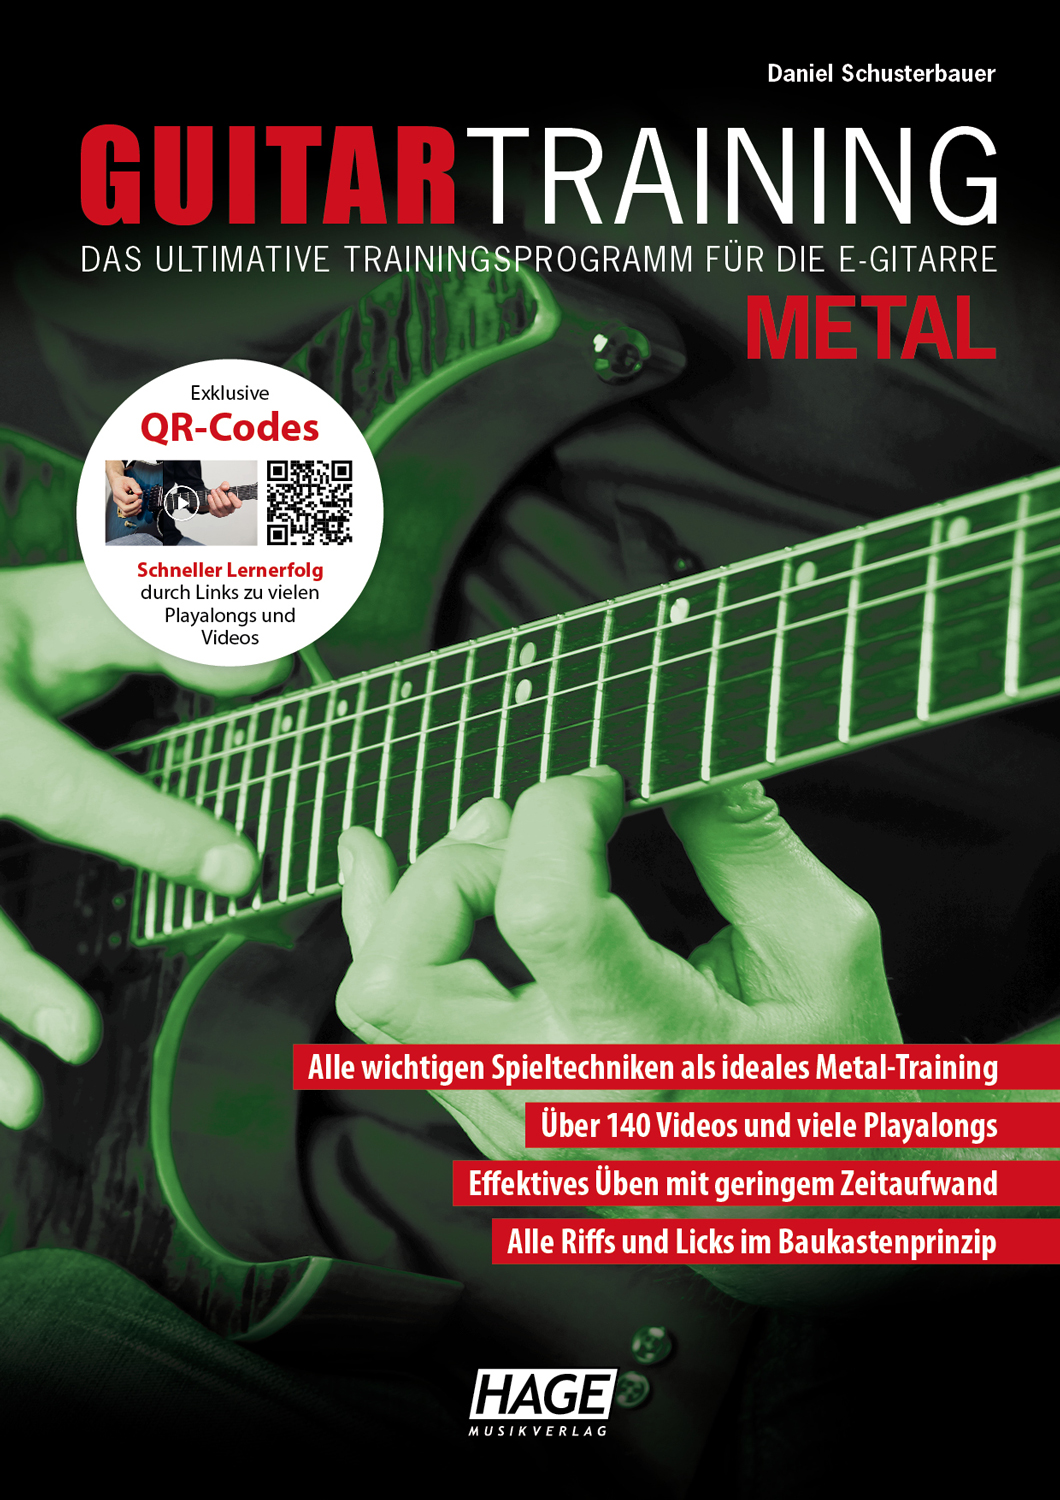 Guitar Training Metal (mit QR-Codes)